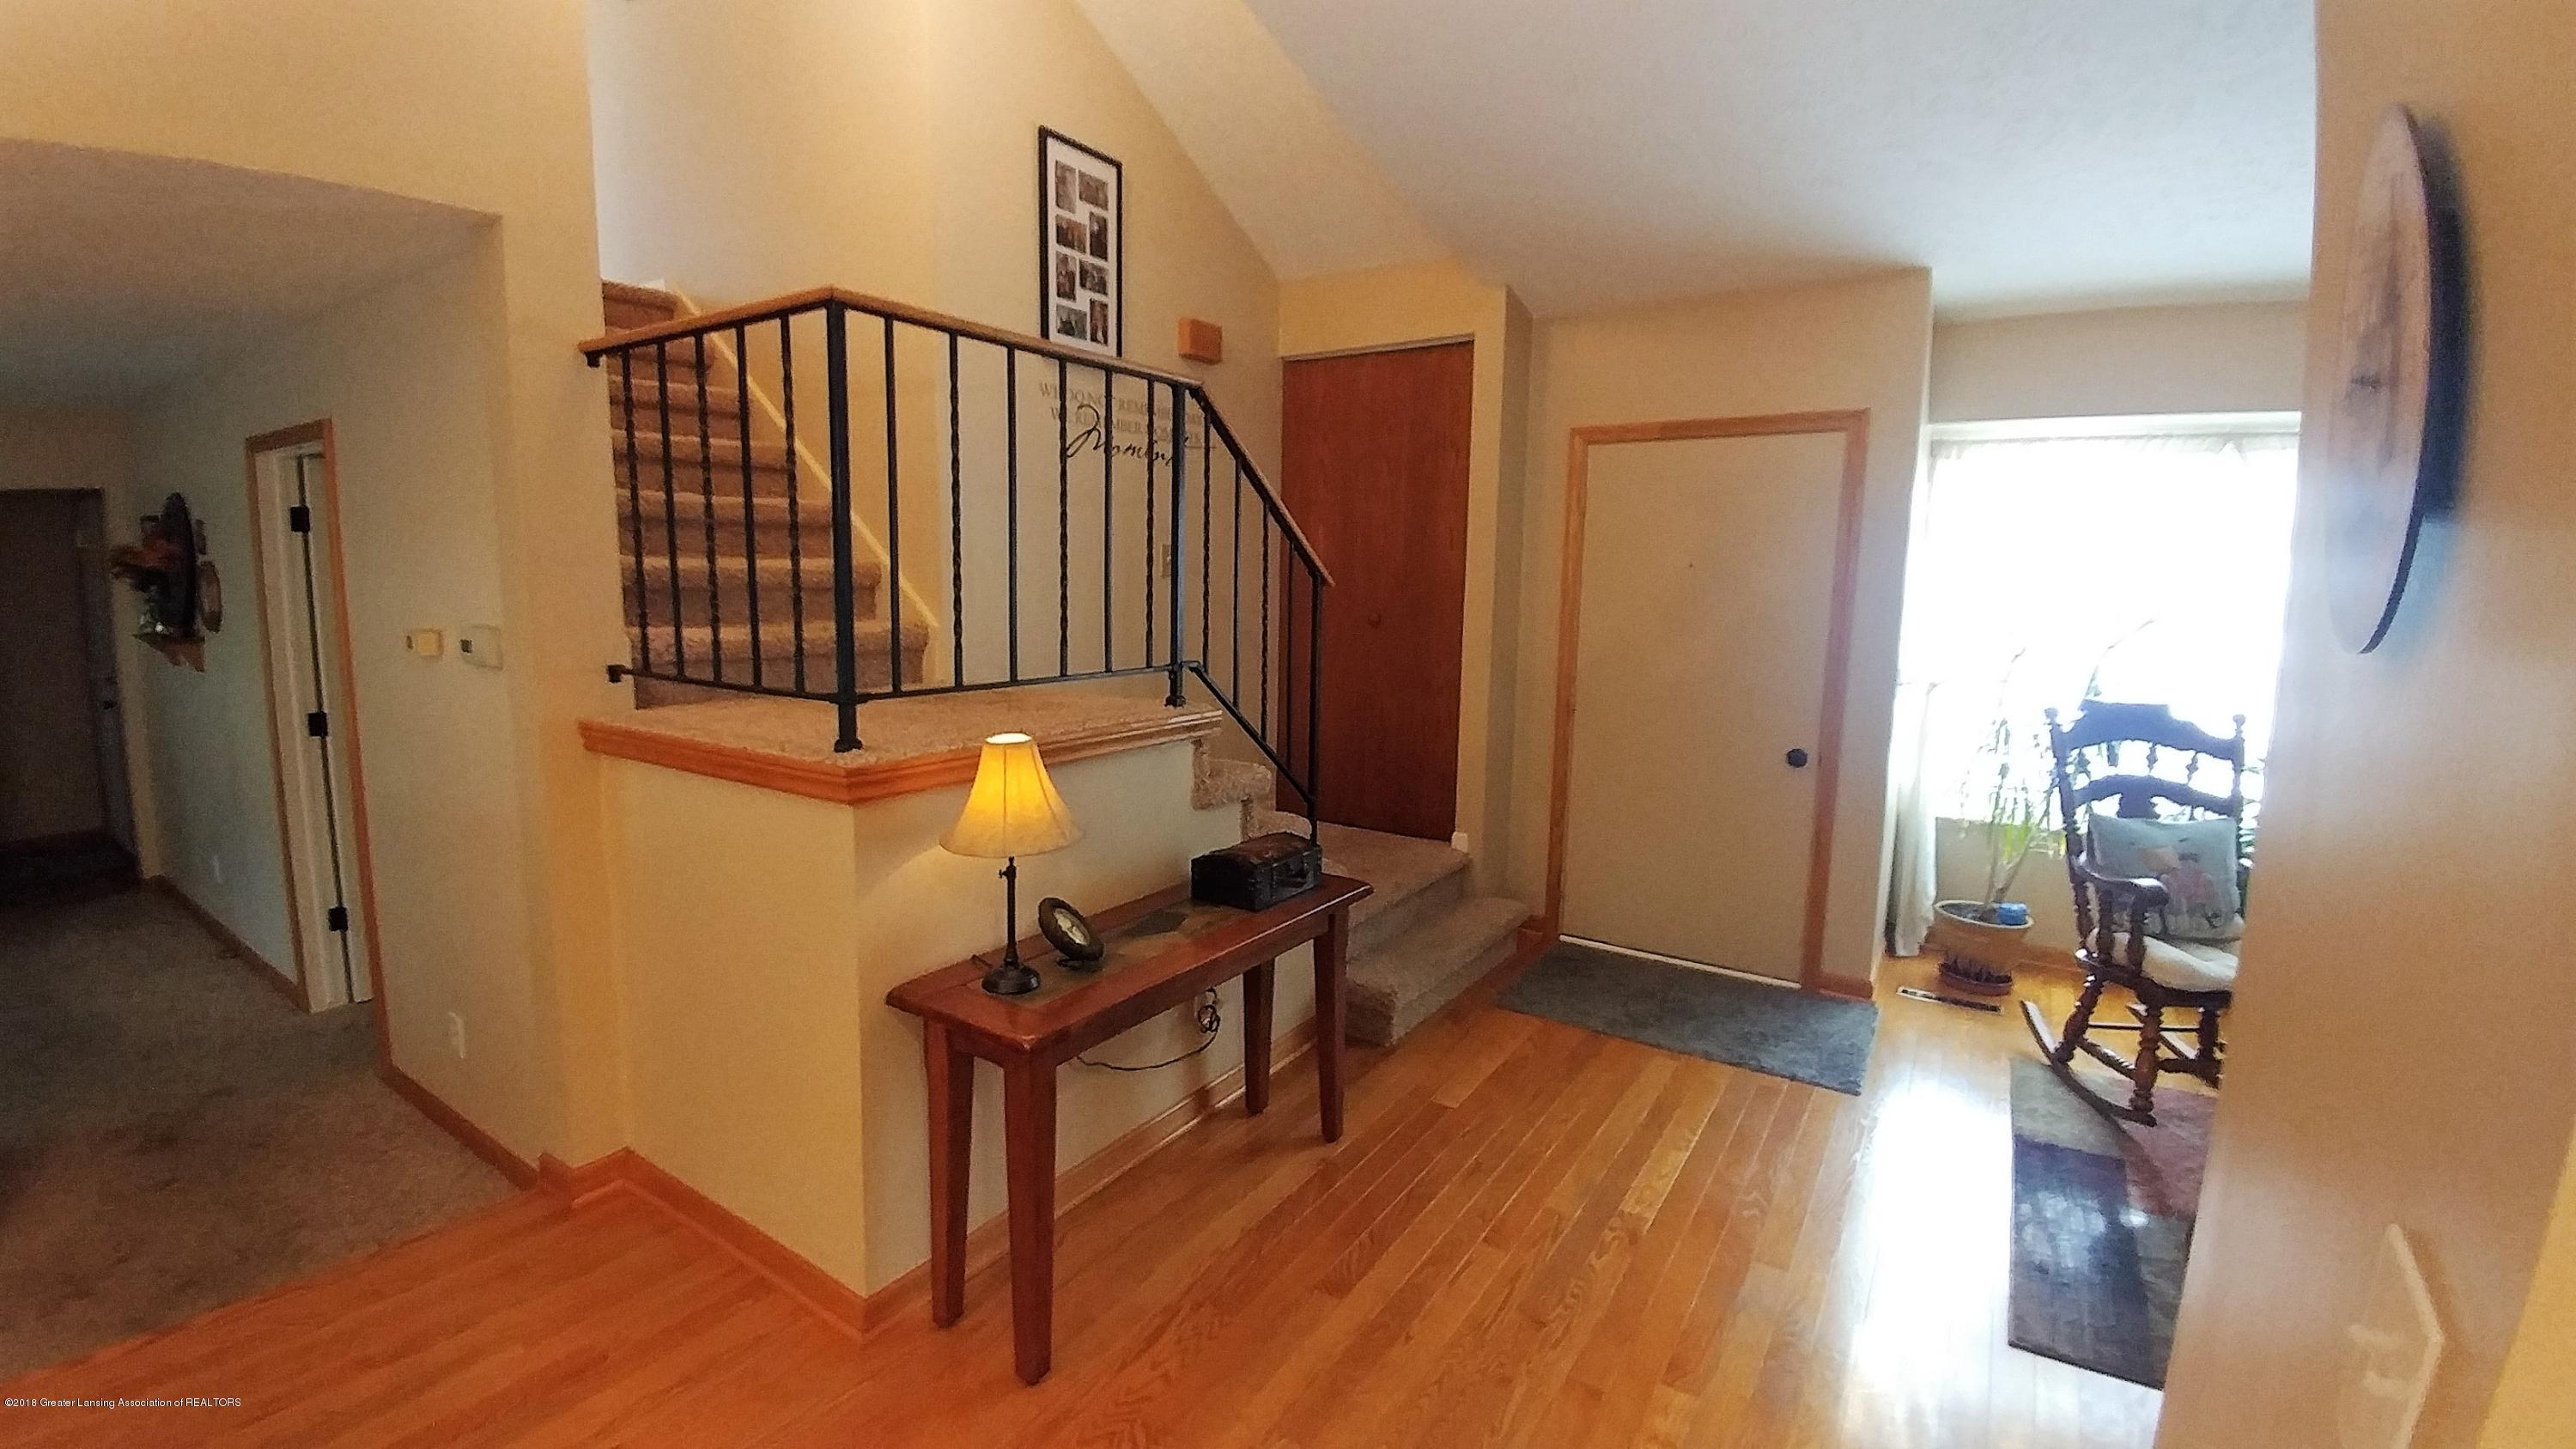 504 Chesley Dr - 3 - 3